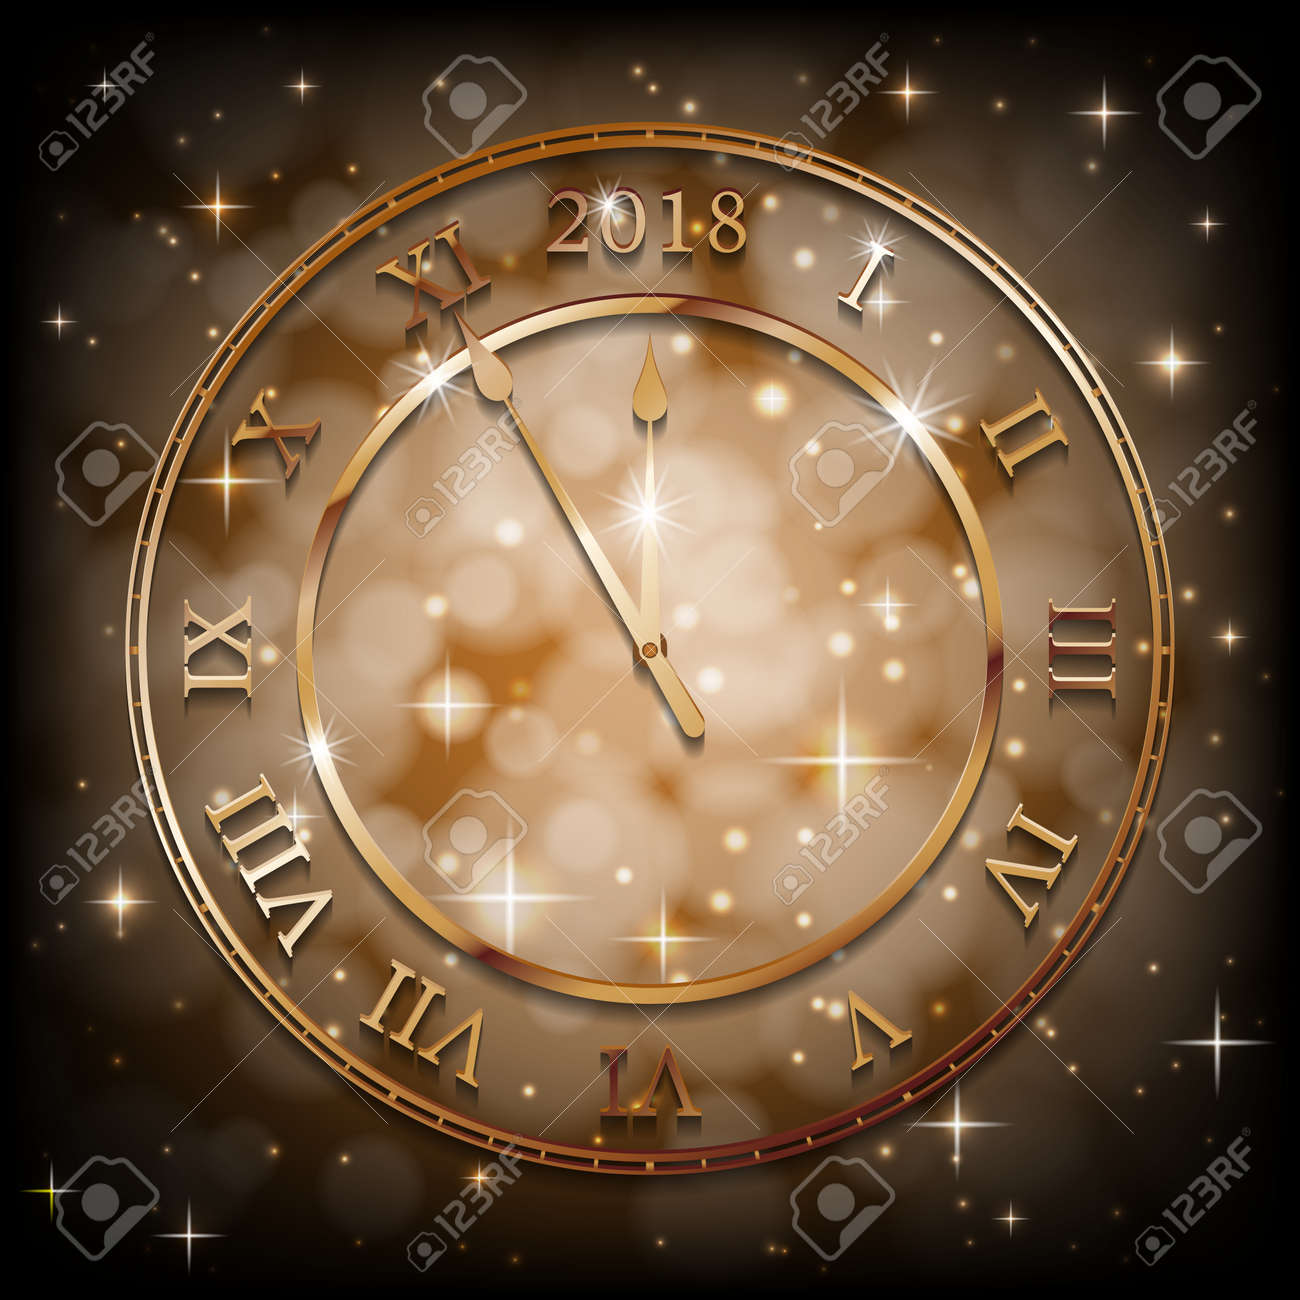 New Year 2018 Gold Background With Bronze Old Clock Greetings